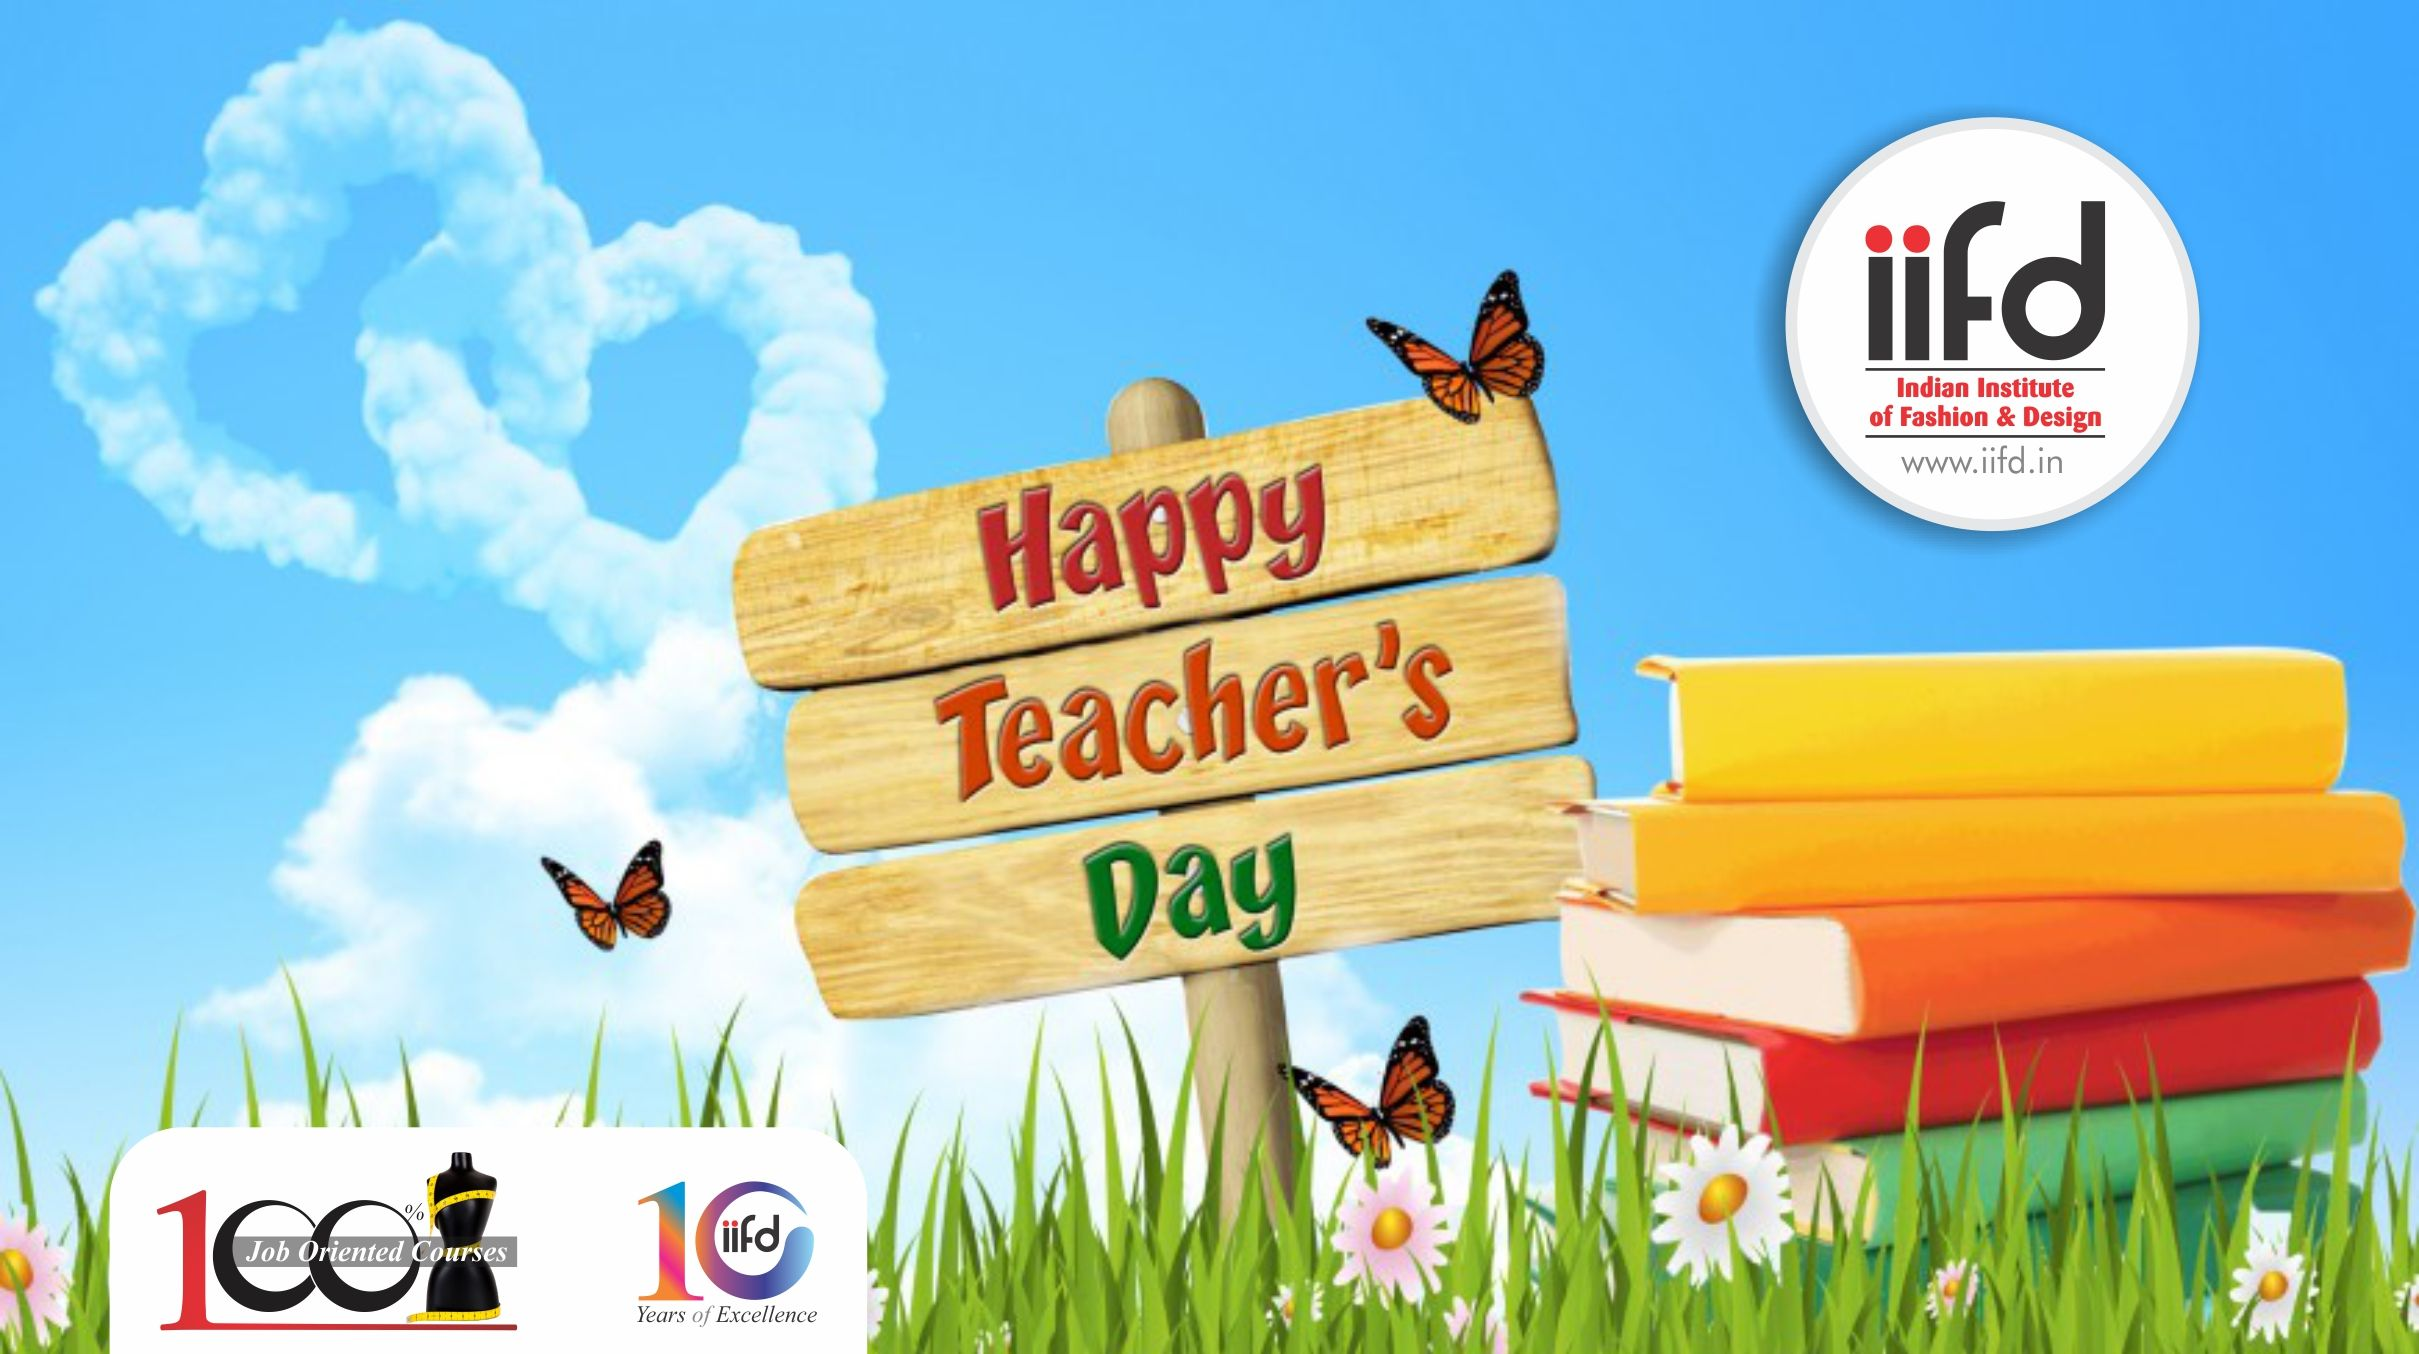 Happy Teacher S Day To All Best Fashion Degree Institute In Chandigarh 100 Plac Fashion Designing Course Happy Teachers Day Fashion Designing Institute